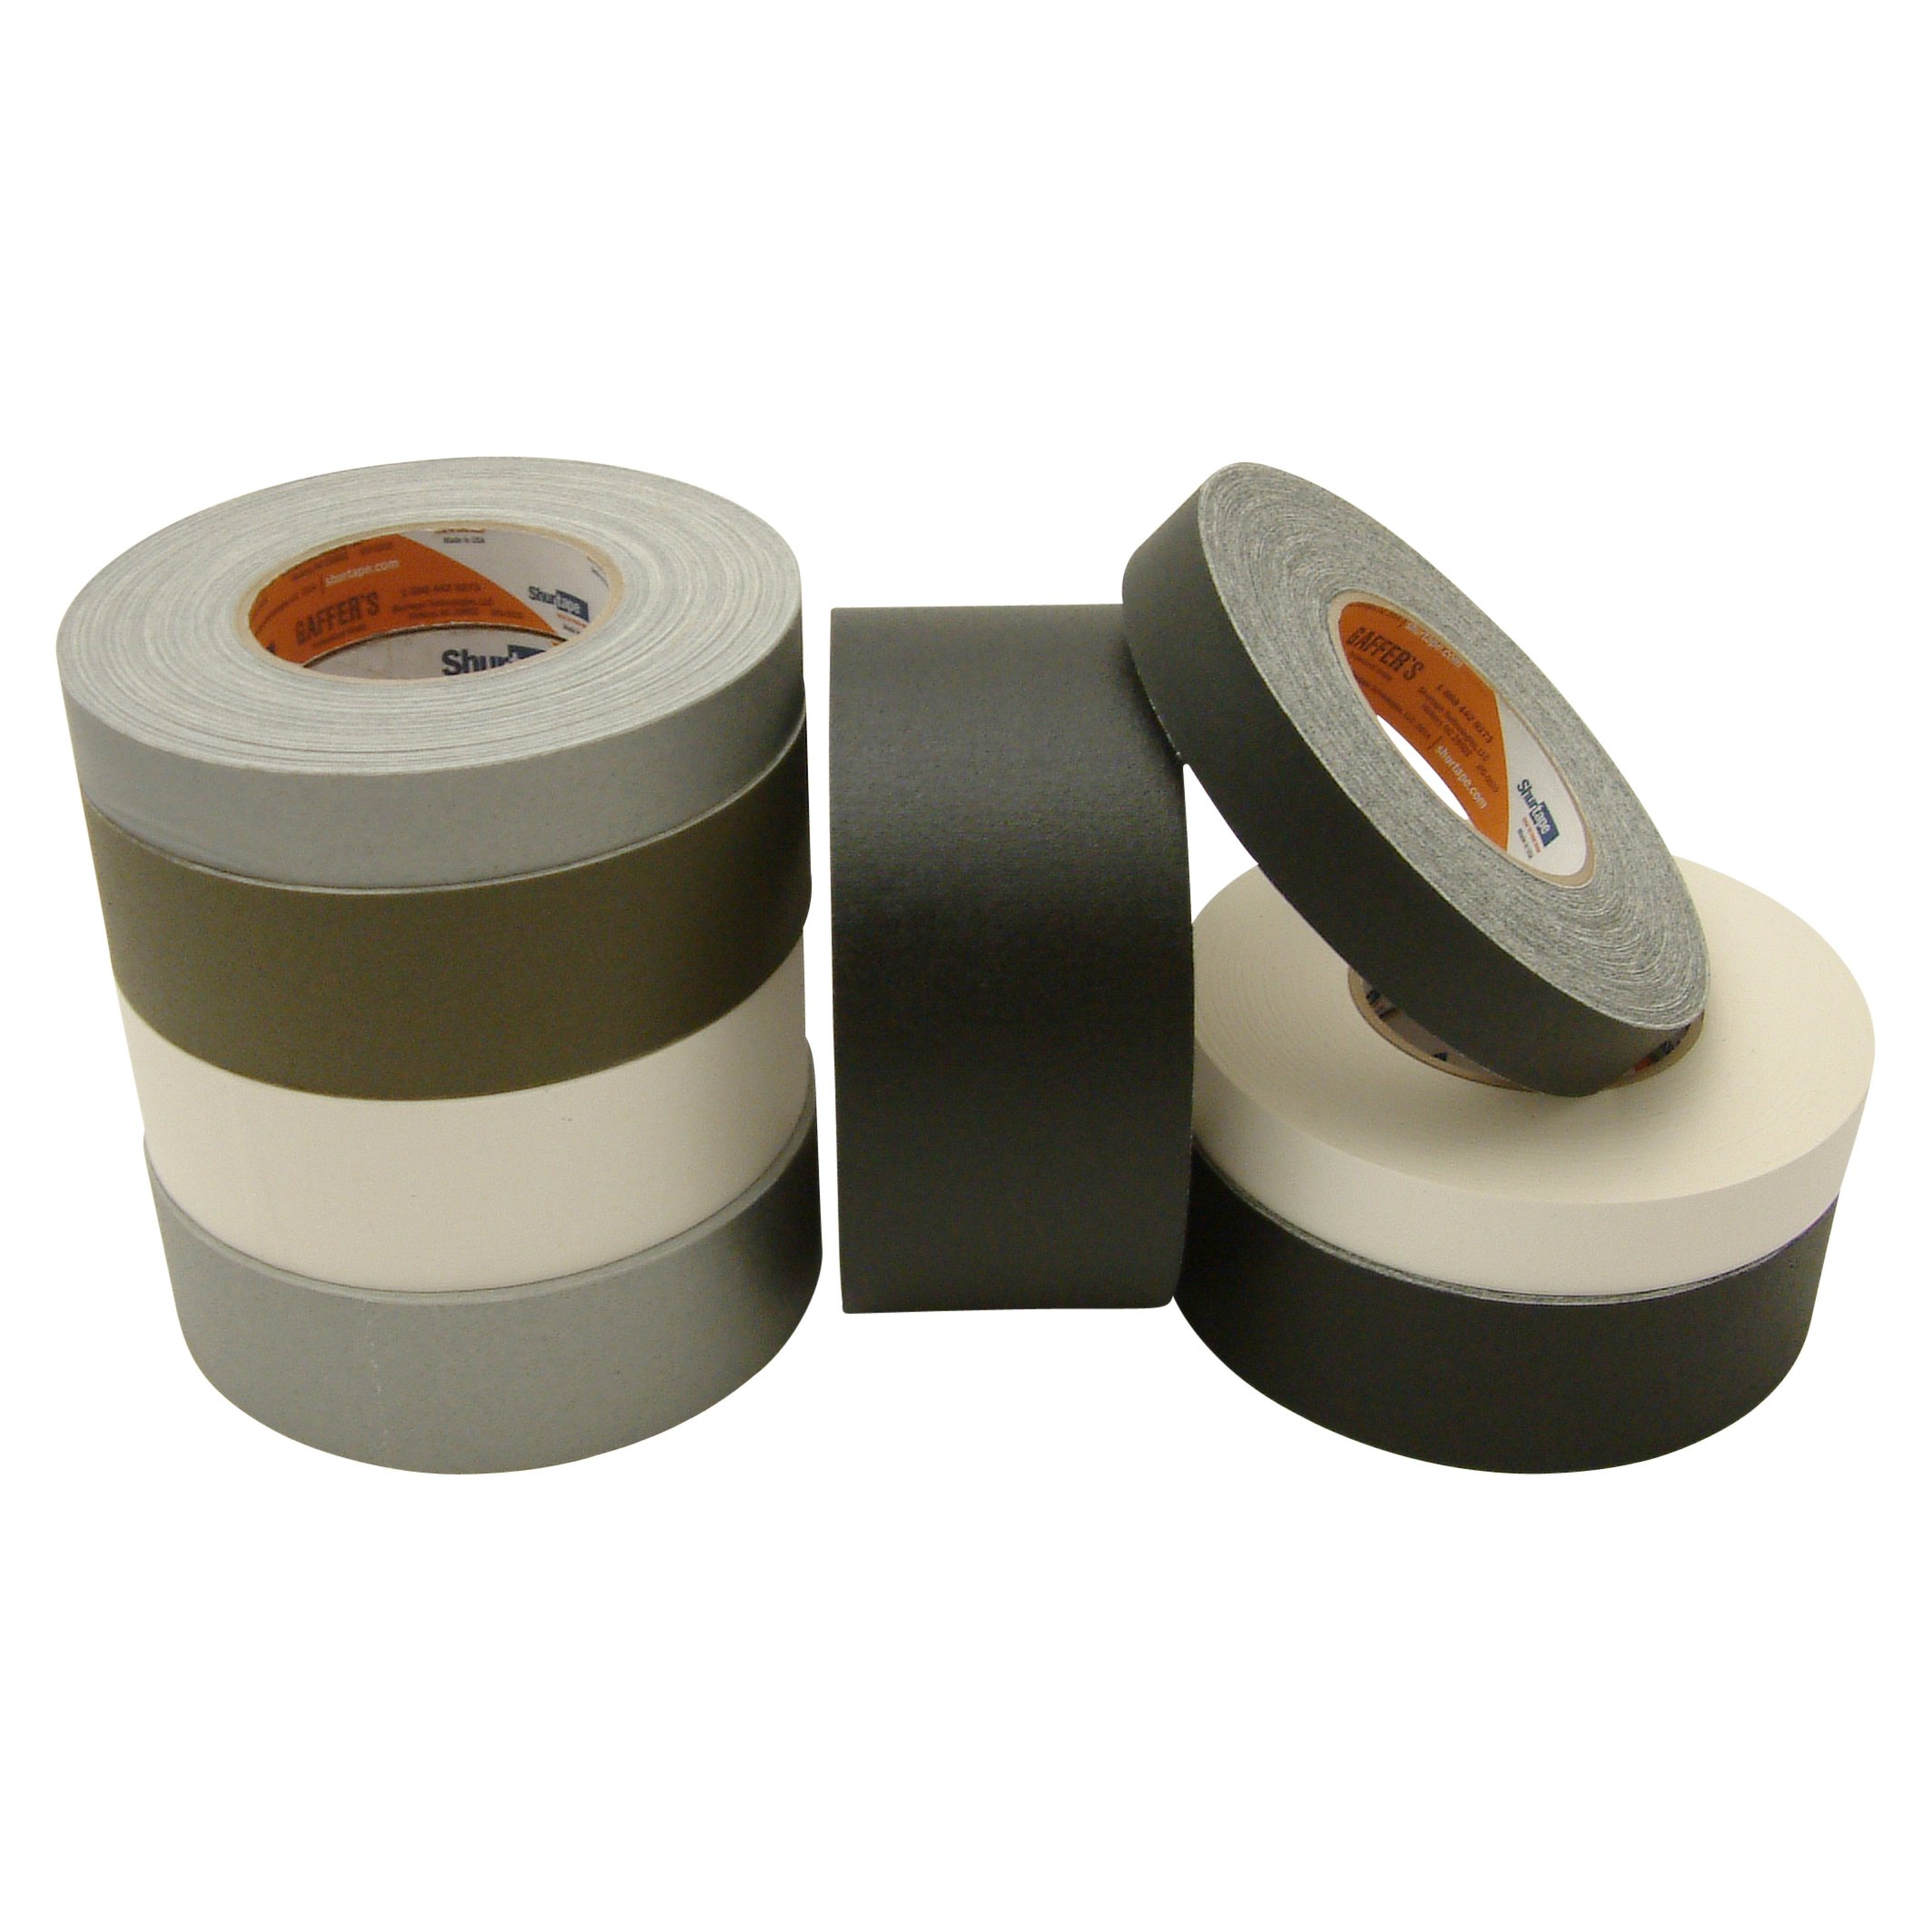 Shurtape P-672/BLK350 P-672 Professional Grade Gaffers Tape: 3'' x 50 yd. by Shurtape (Image #2)